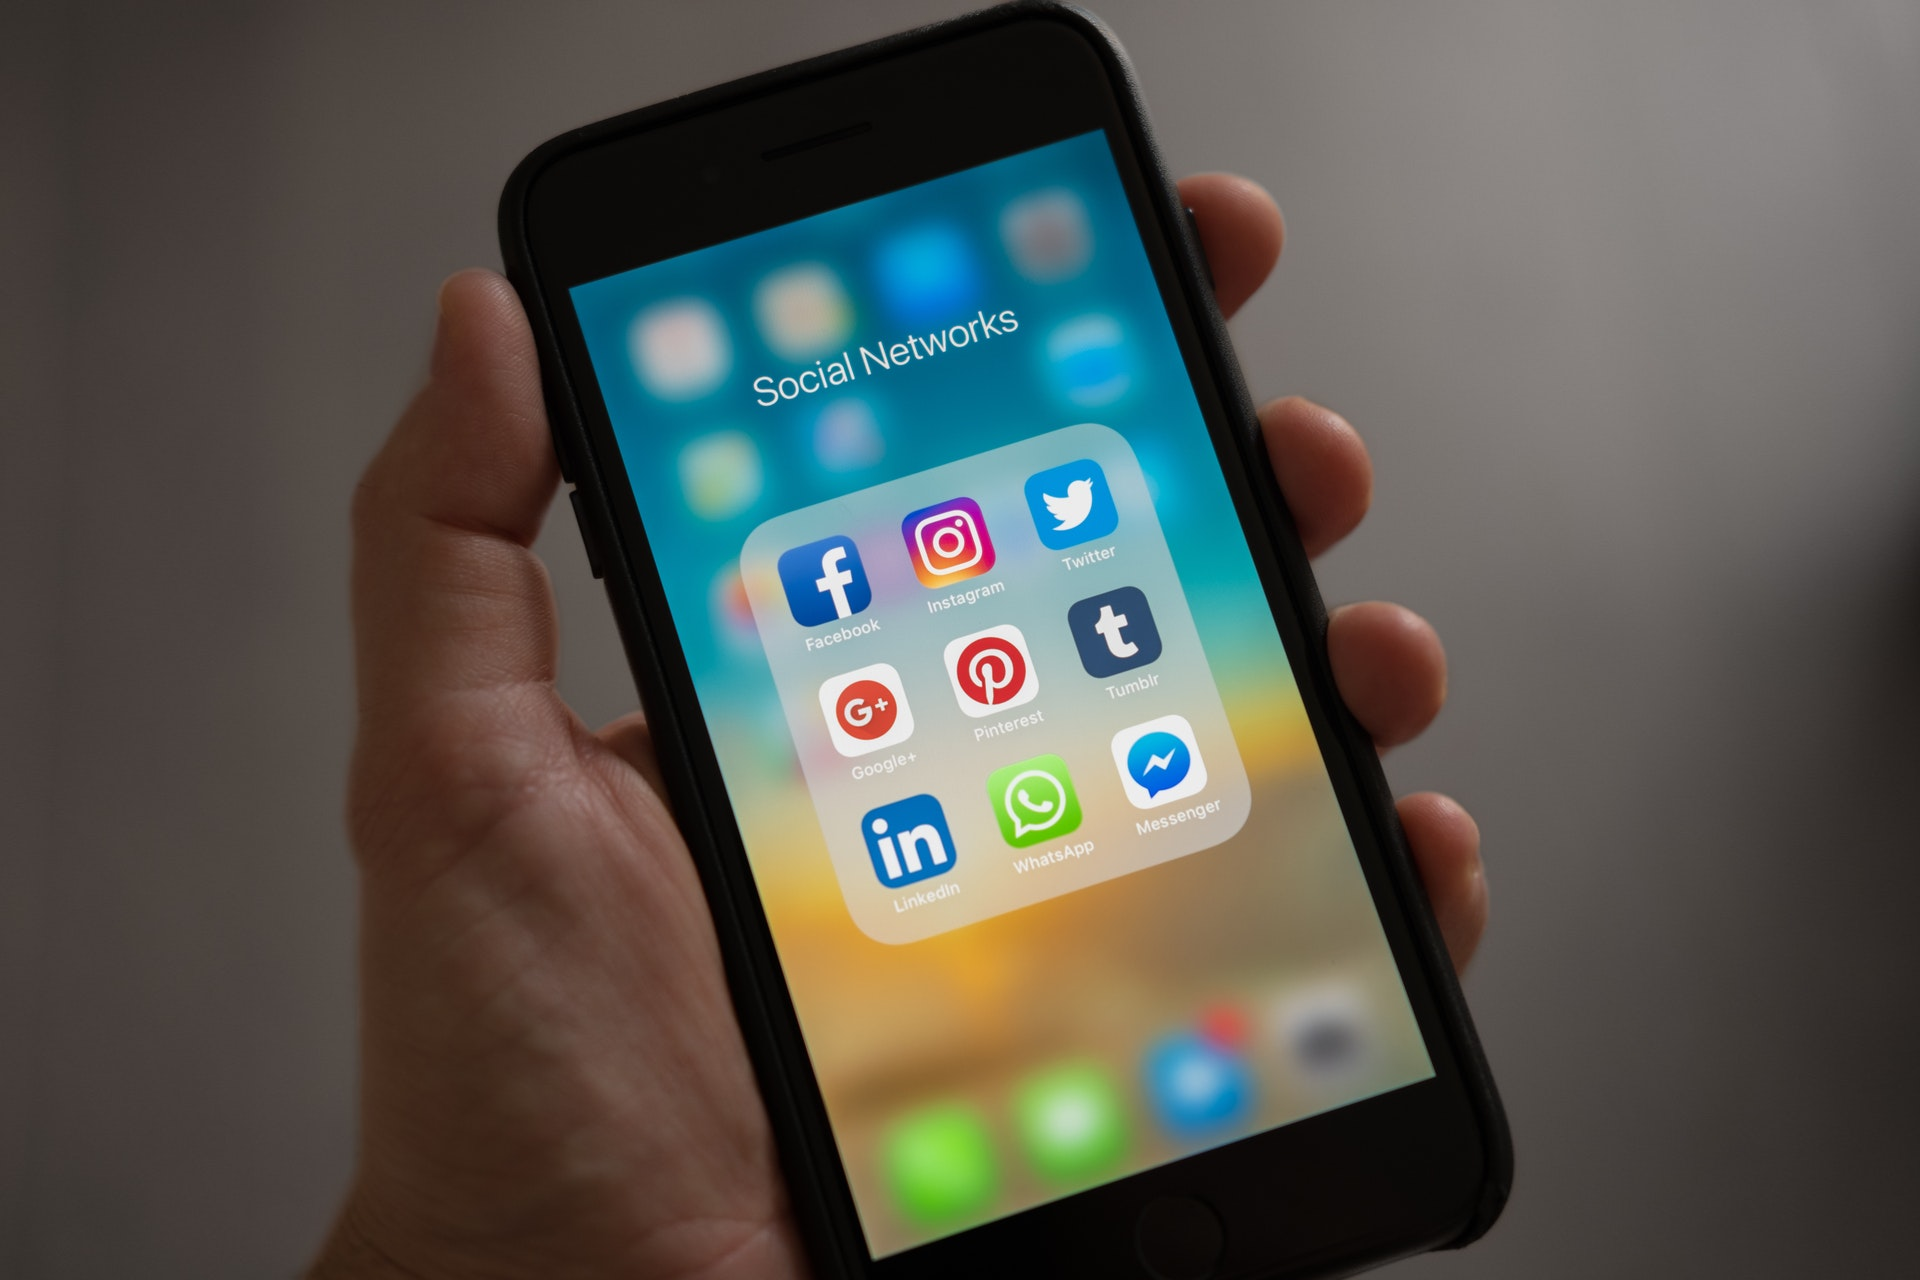 4 PERSPECTIVES YOU SHOULD APPLY TO YOUR SOCIAL MEDIA MARKETING RIGHT NOW